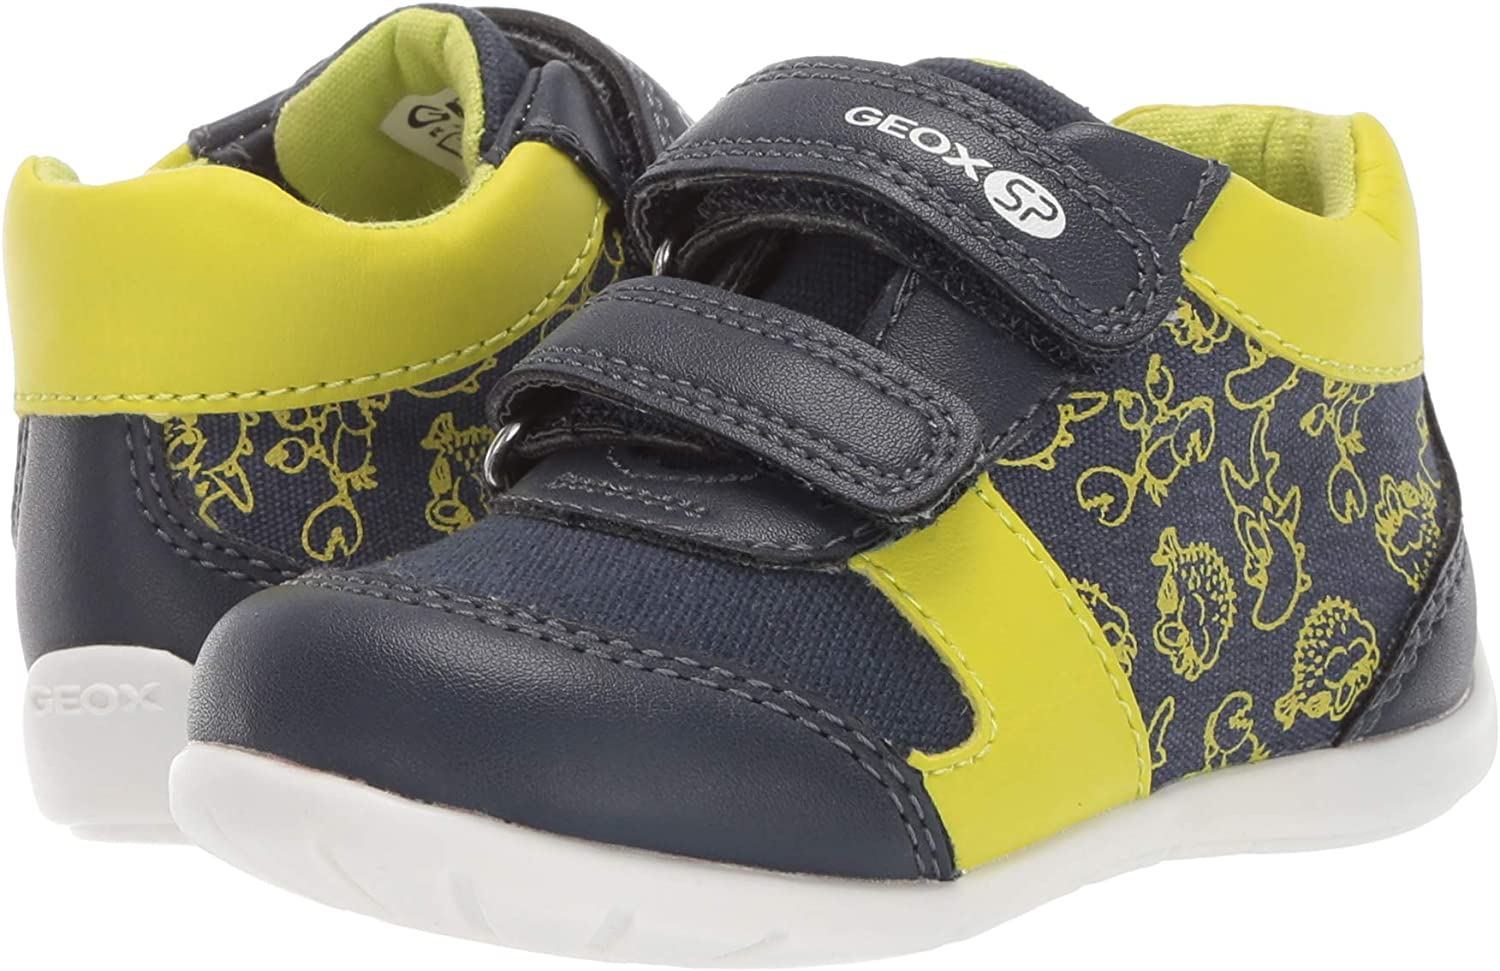 Geox Unisex-Child Elthan Boy 1 High Top Velcro Shoe Sneaker